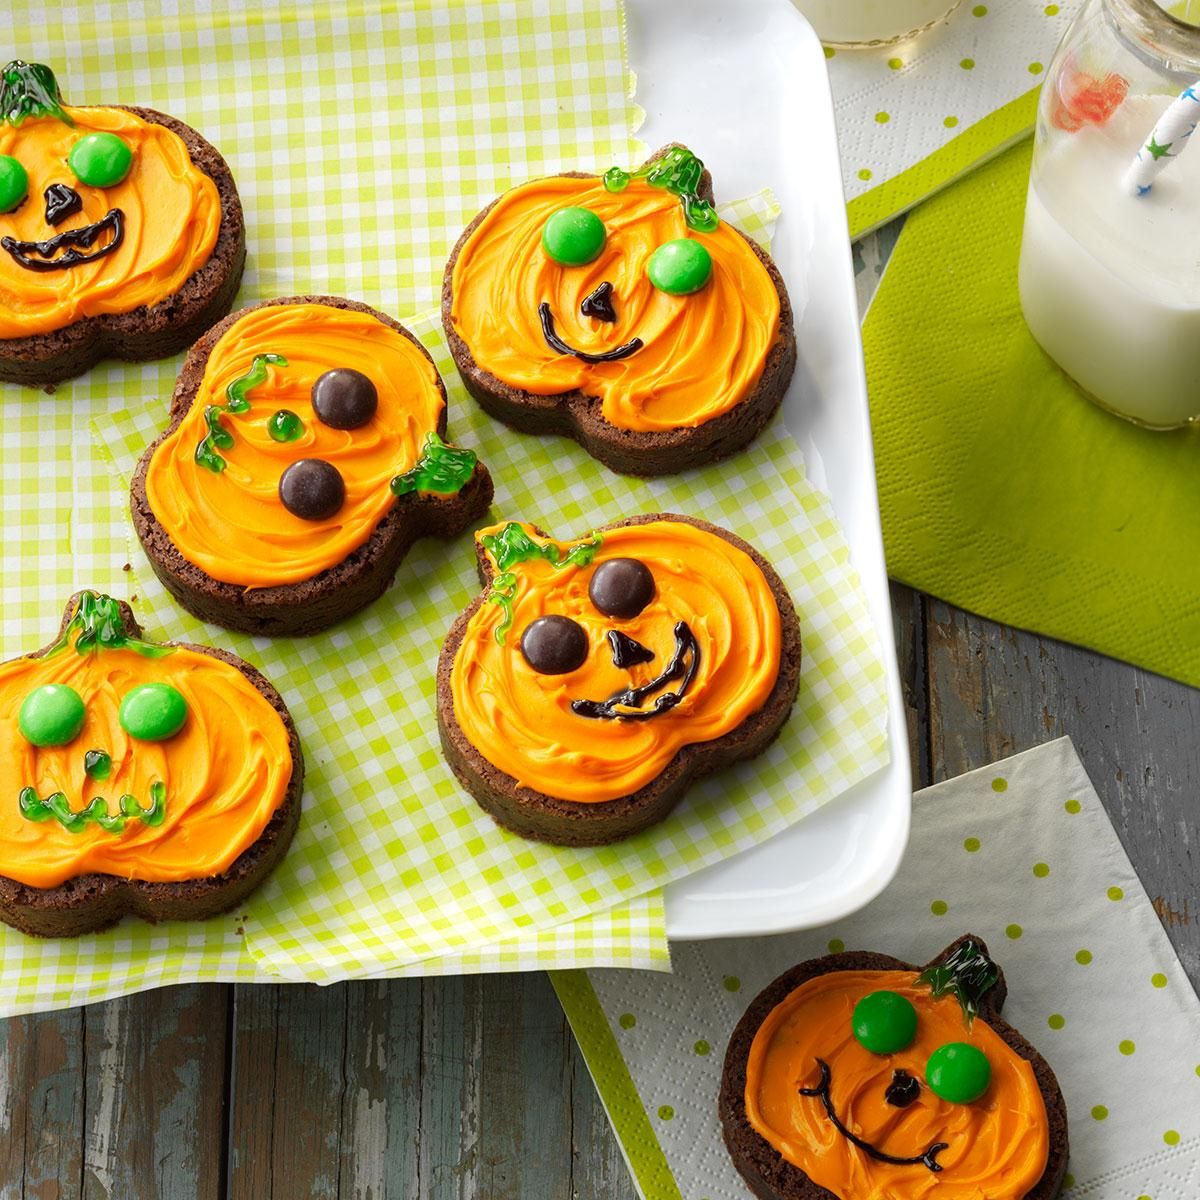 Jack-o'-Lantern Brownies Recipe -Hosting a Halloween party? Use a cookie cutter to easily cut these homemade chocolate brownies into pumpkin shapes, then give them personality with orange, black and green frosting. Our grandchildren think these are great. —Flo Burtnett, Gage, Oklahoma